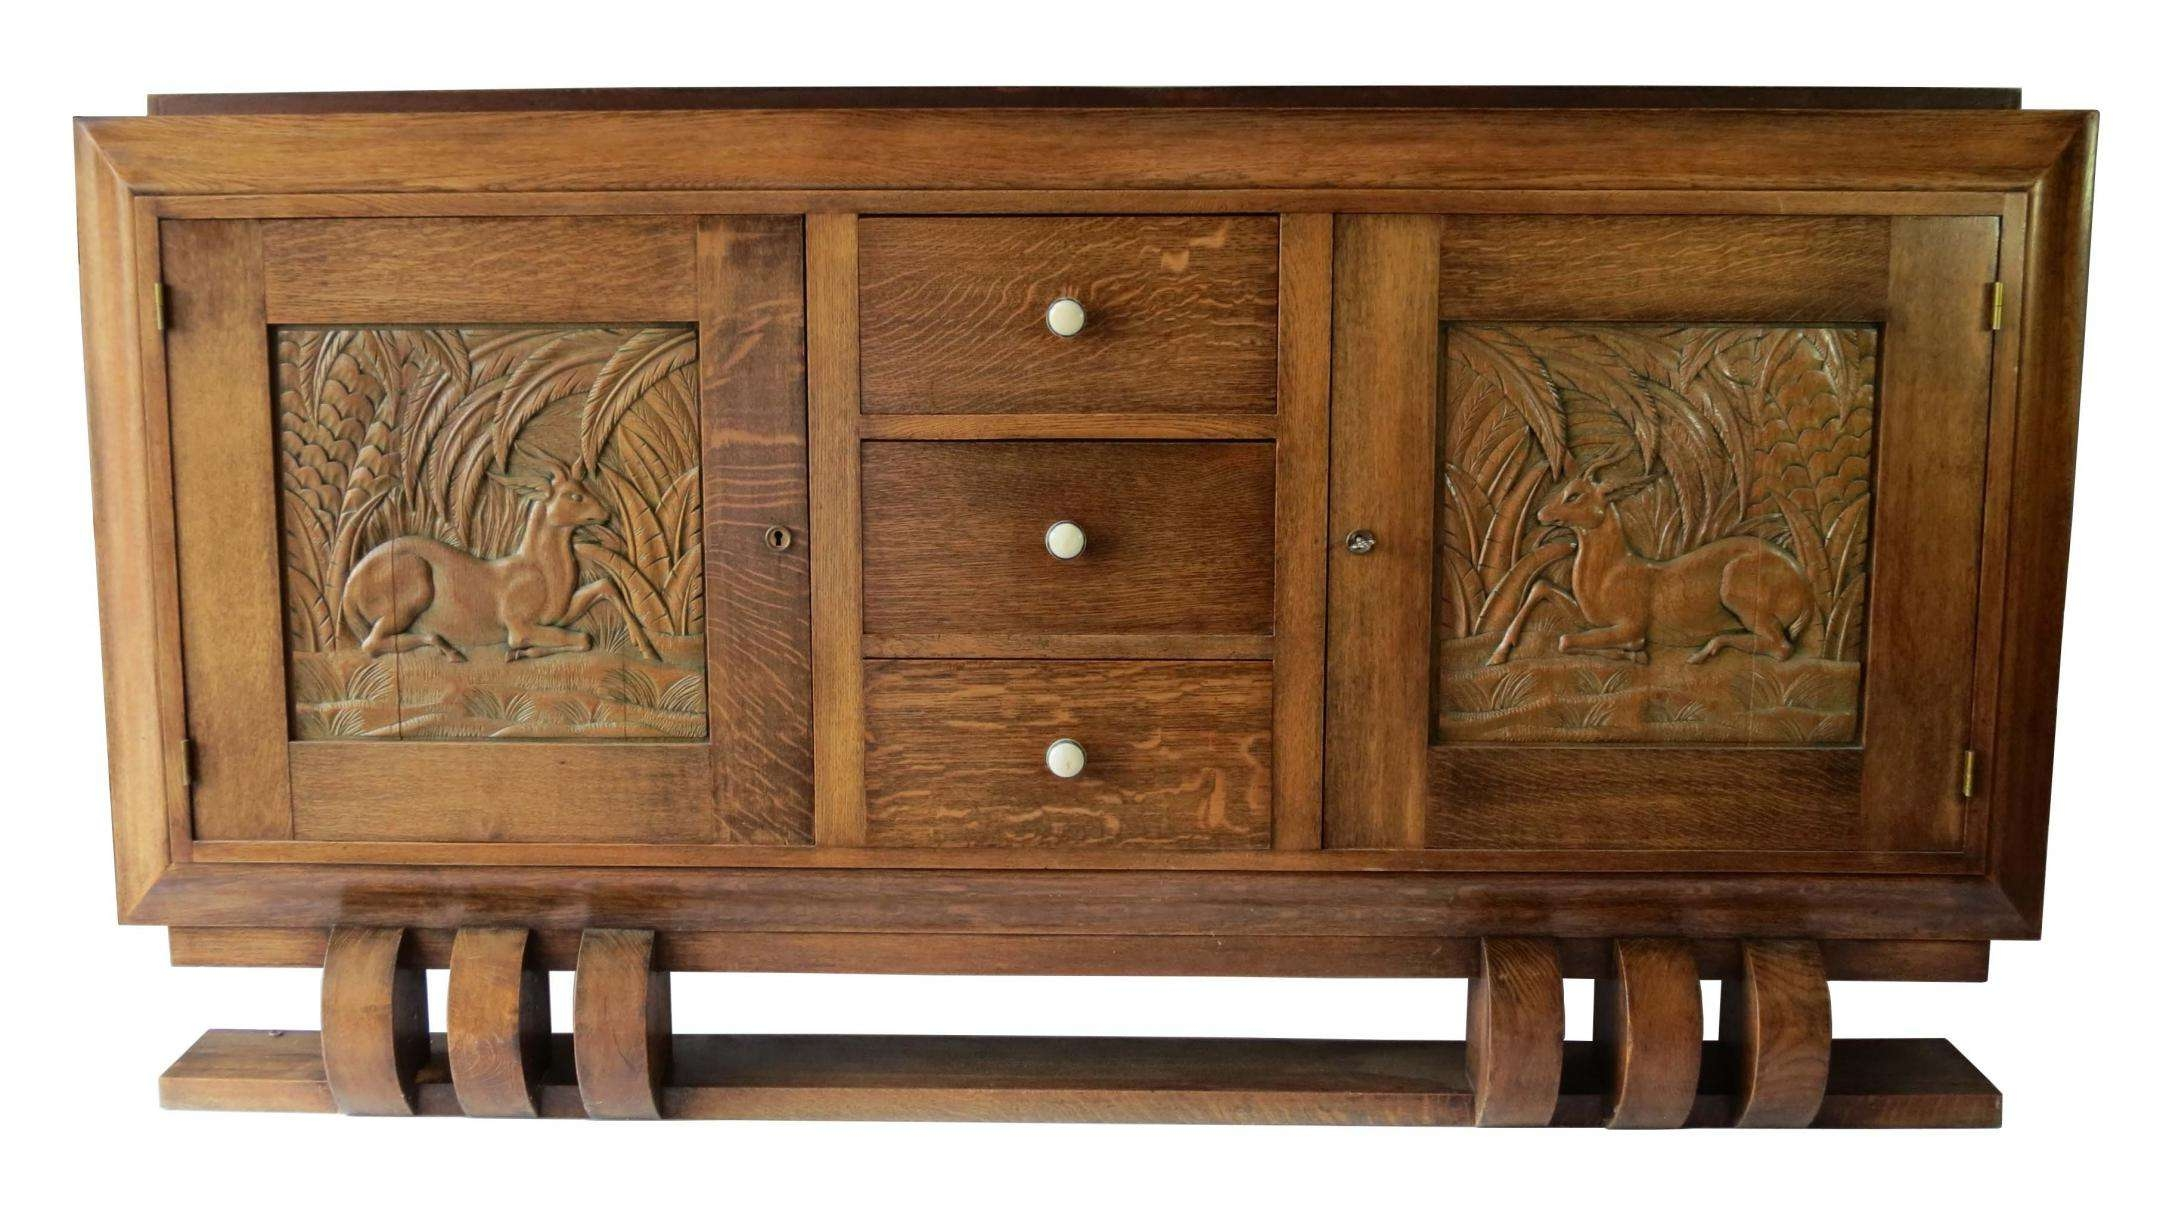 Dudouyt French Art Deco Sideboard With Carved Biches | Modernism With Art Deco Sideboards (View 6 of 20)